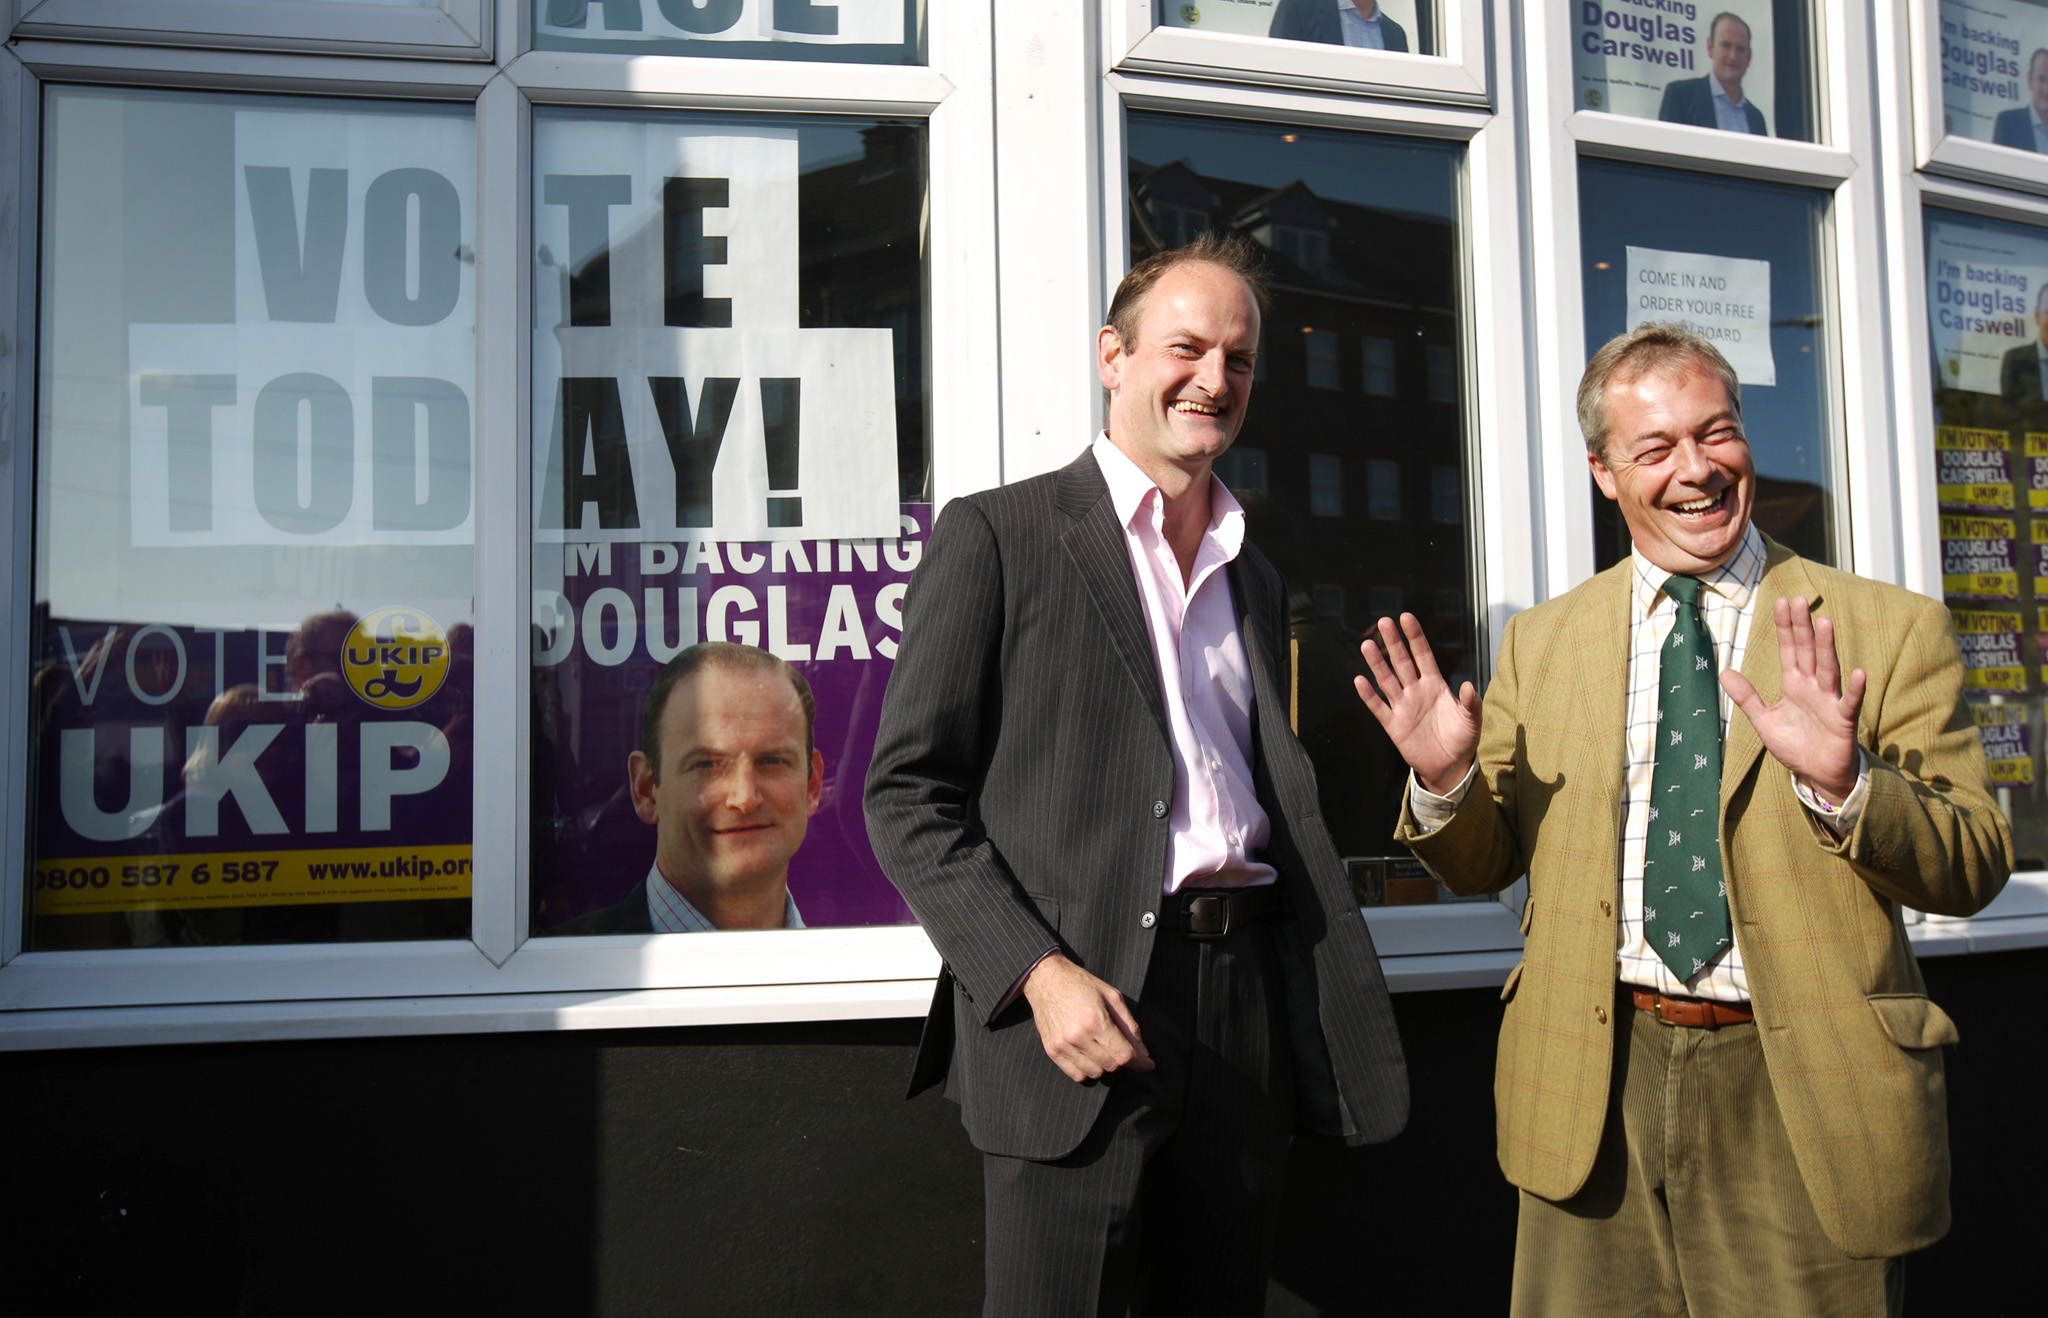 Clacton-On-Sea Parliamentary By-Election...CLACTON-ON-SEA, ENGLAND - OCTOBER 09:  United Kingdom Independence Party (UKIP) candidate Douglas Carswell (L) stands with party leader Nigel Farage on October 9, 2014 in Clacton-on-Sea, England.  Polls have opened in the by-election which is being held after the sitting Conservative party Member of Parliament Douglas Carswell defected to UKIP.  (Photo by Peter Macdiarmid/Getty Images)